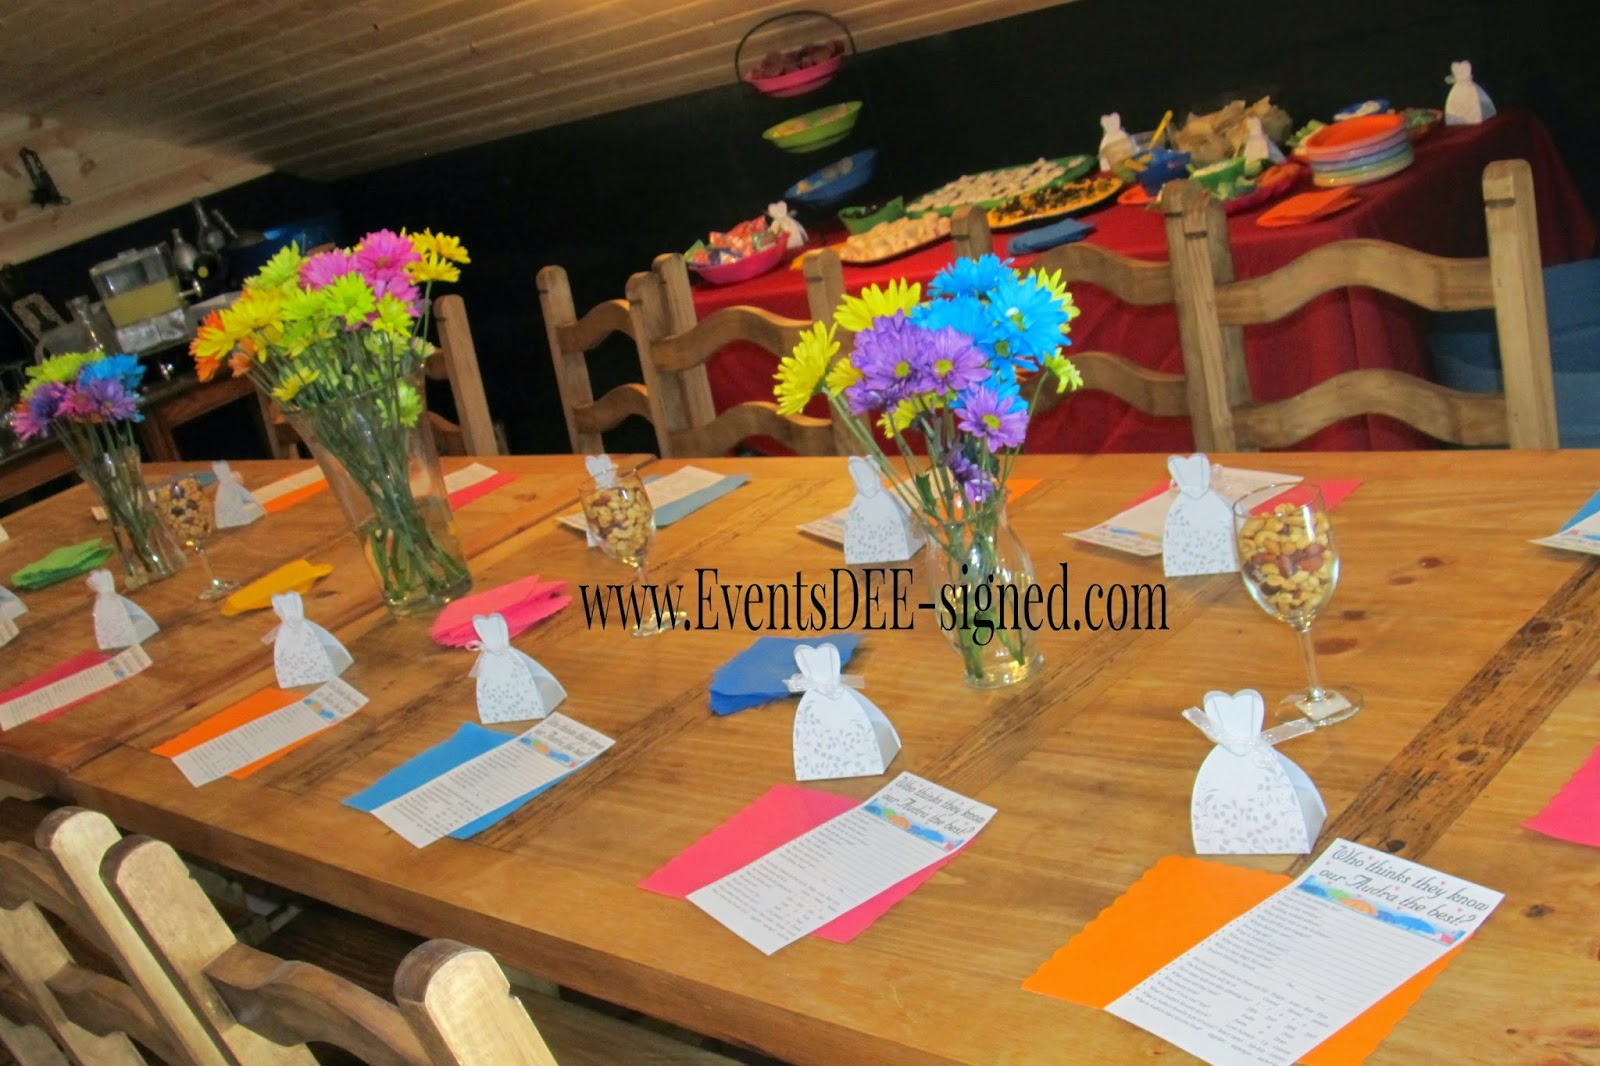 EventsDEE-signed Bridal Shower wedding planning, event planning, party planning, multi-colored